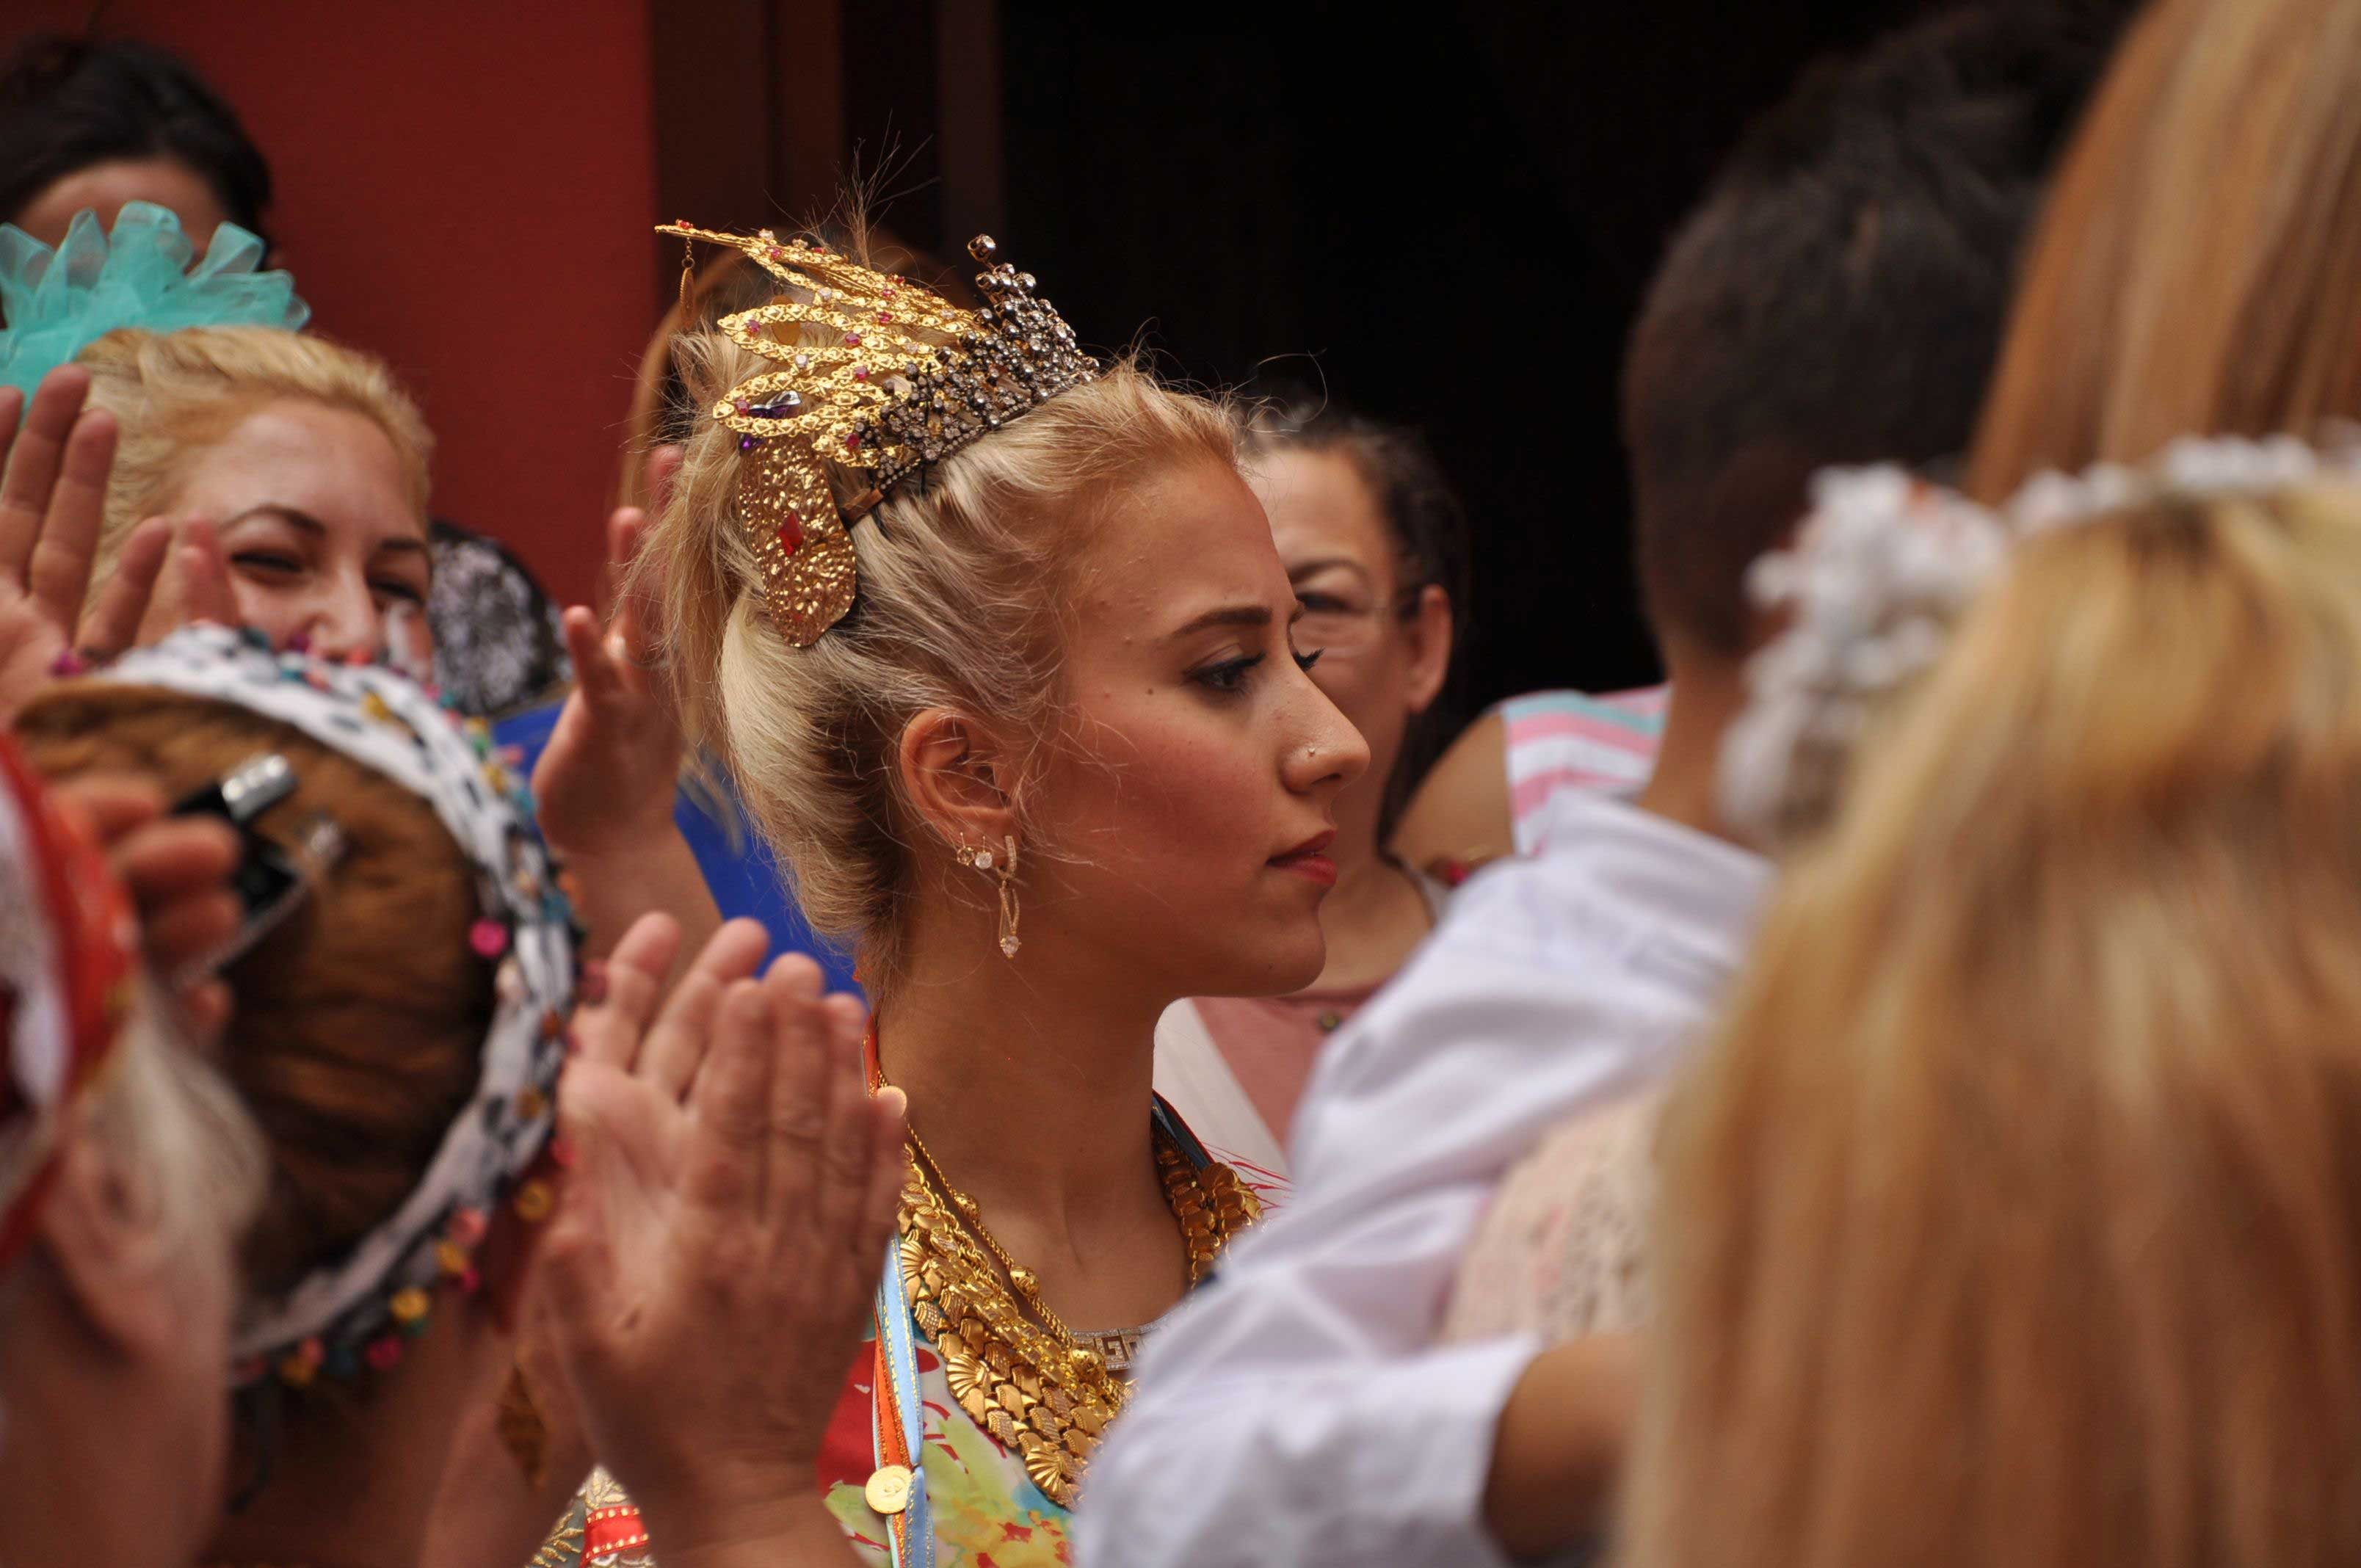 Balat… and the gypsy wedding